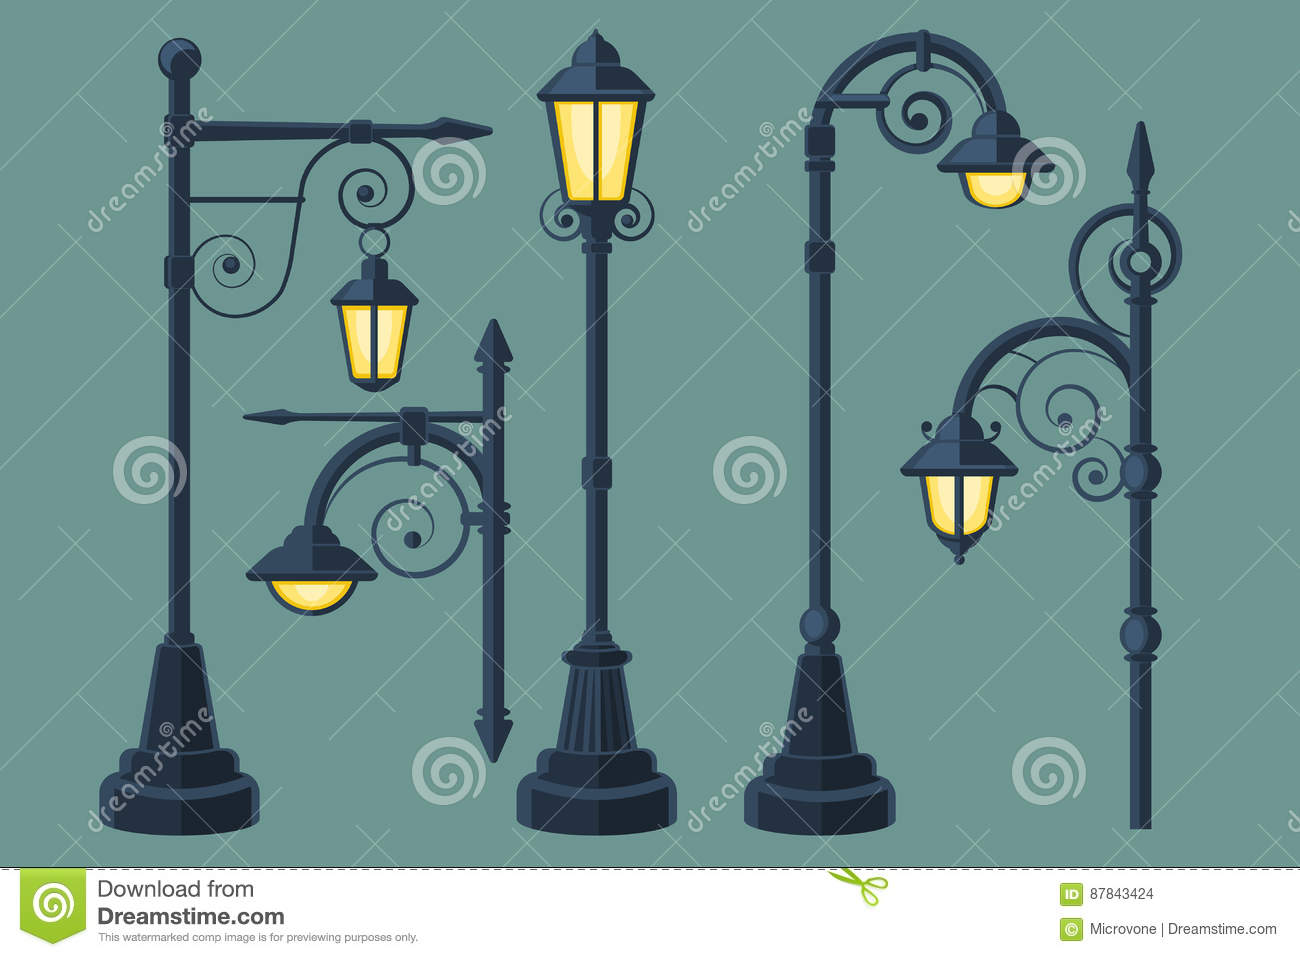 Candelon Cheminees Venerque Street Lamp Illustration